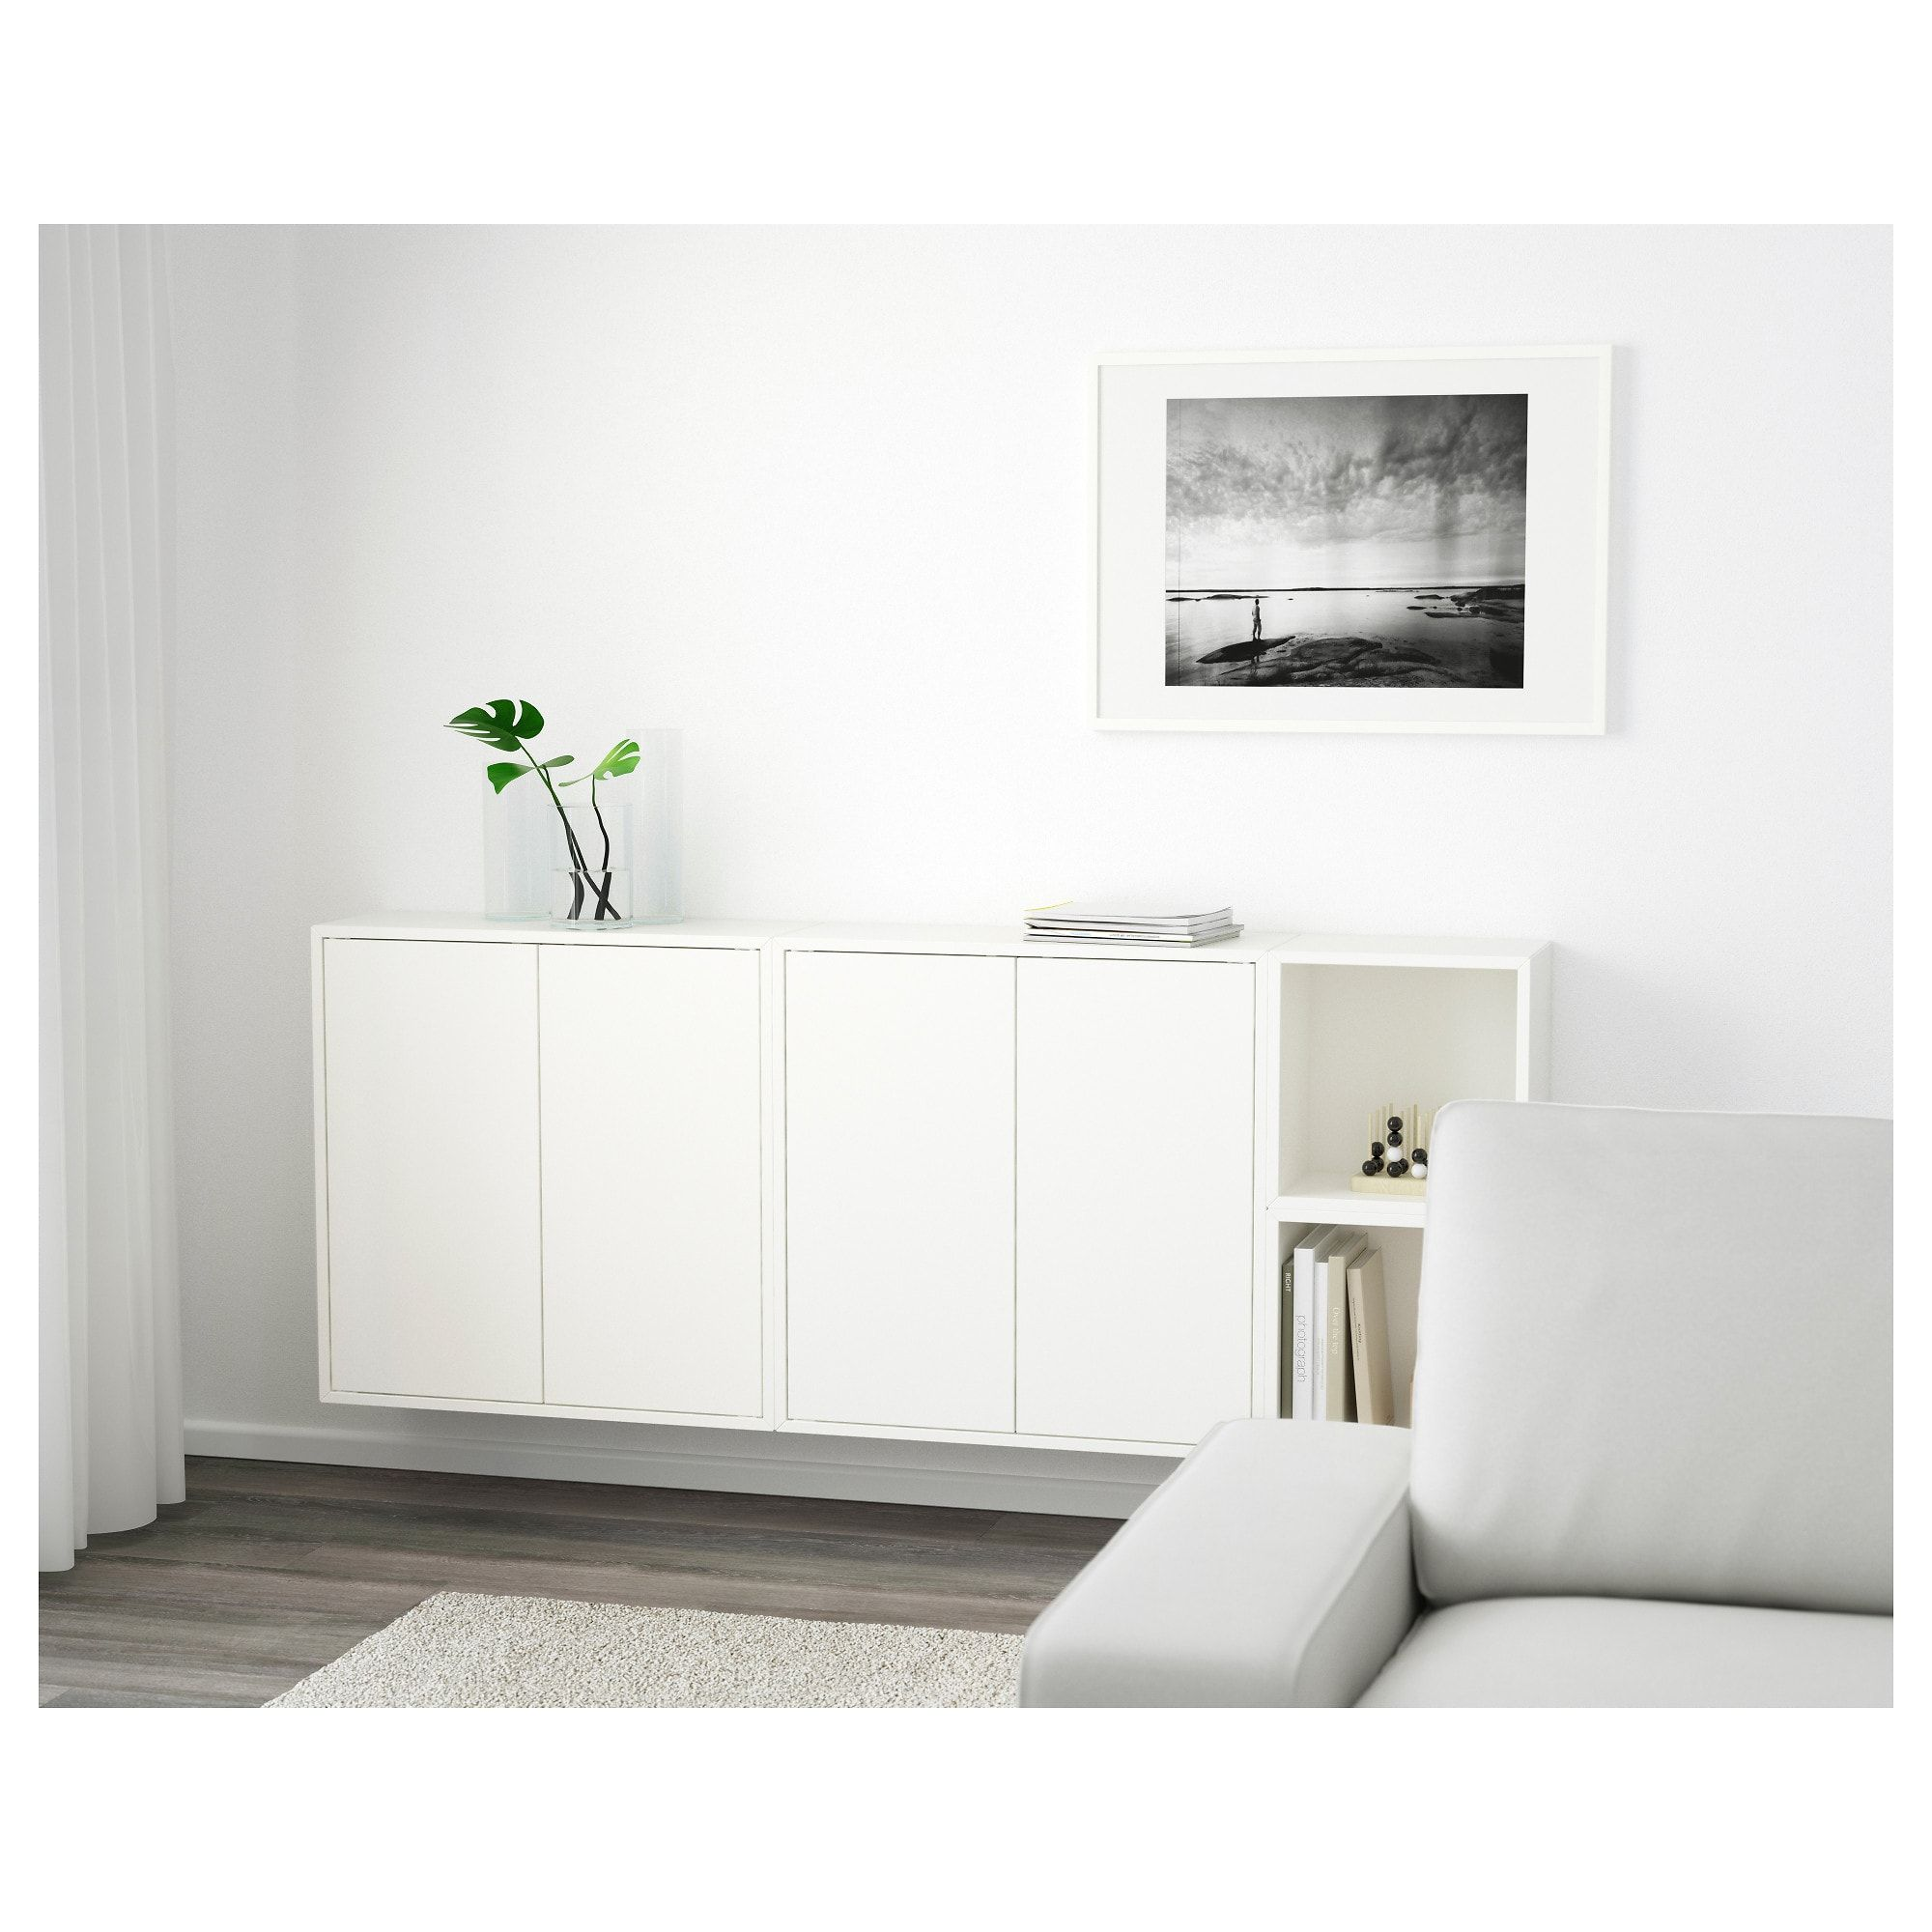 EKET Wall-mounted cabinet combination - white 11212 11212/11212x11212 11212/11212x1211212 112/12